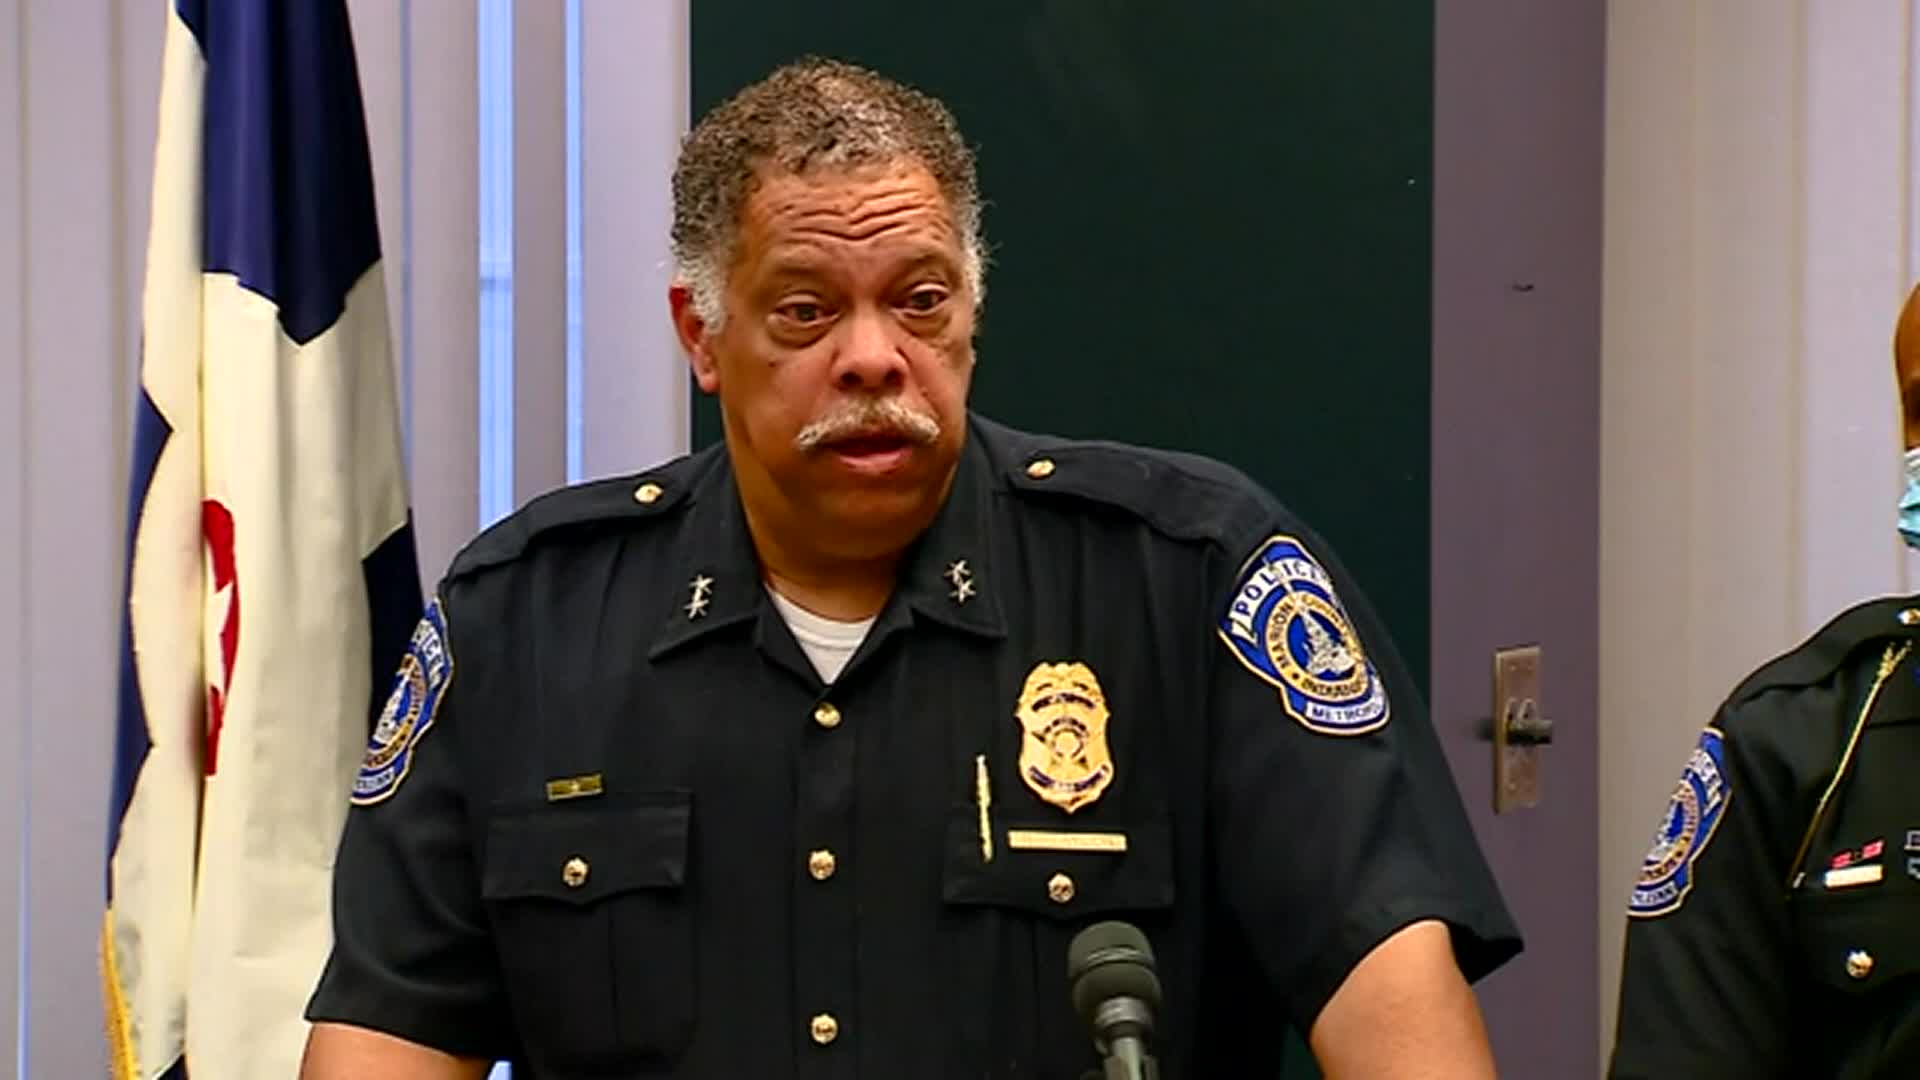 Image for Indianapolis police sergeant charged after body camera video showed him kicking handcuffed man in head